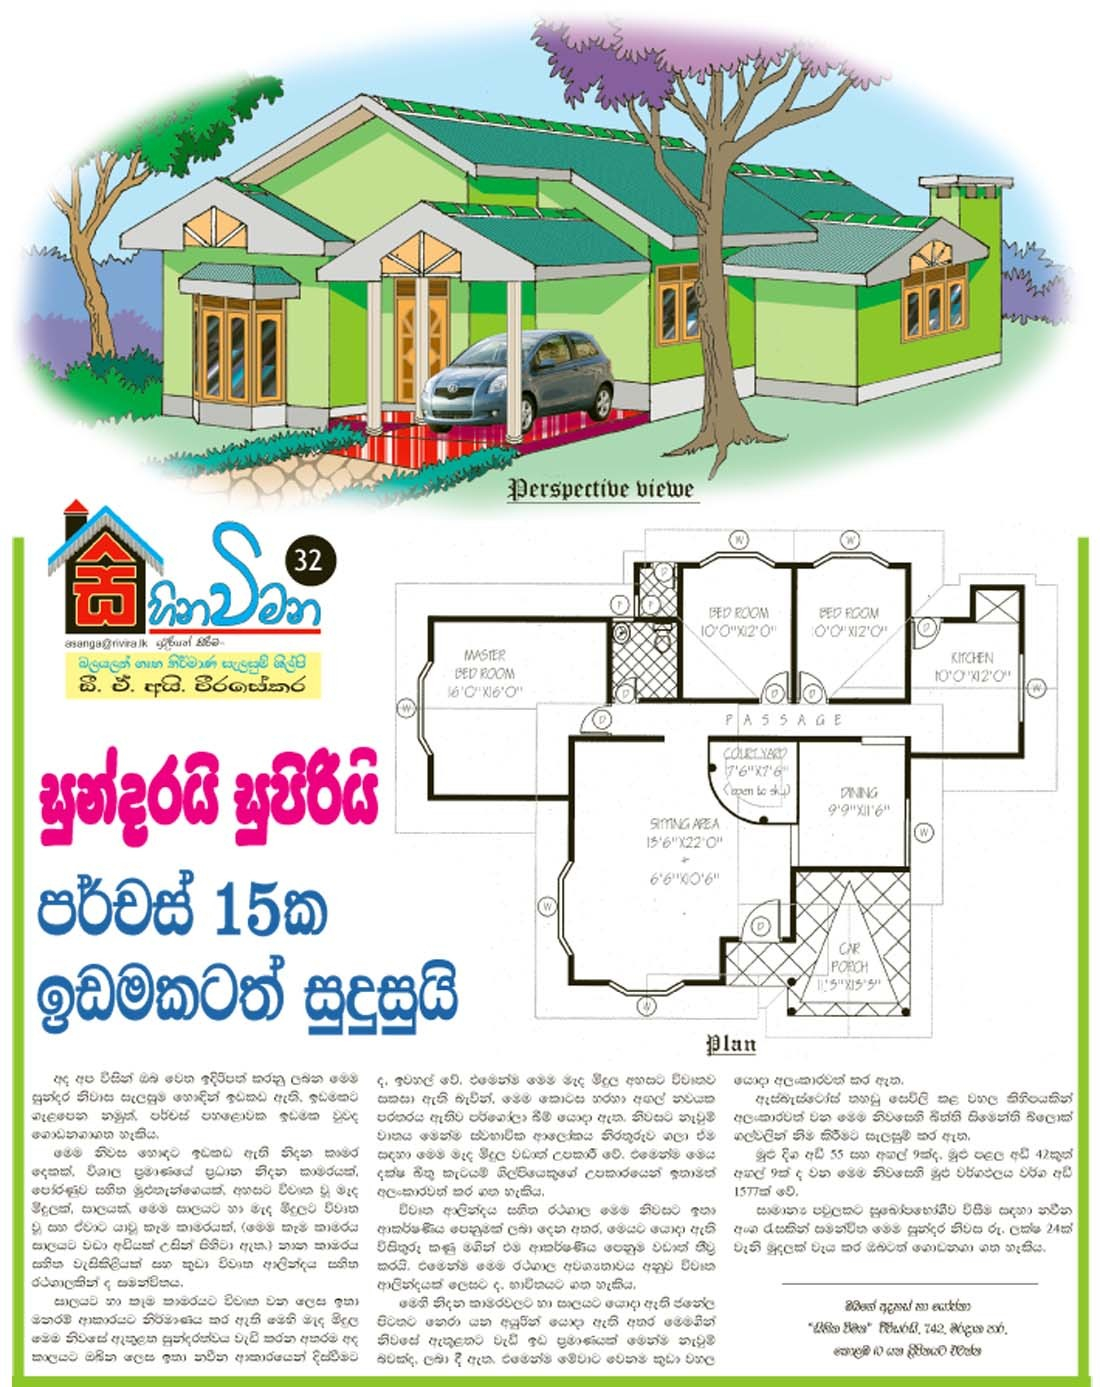 Glamorous New Small House Plans In Sri Lanka Elegant Sri Lankan House Plan inside Set House Plans In Sri Lanka